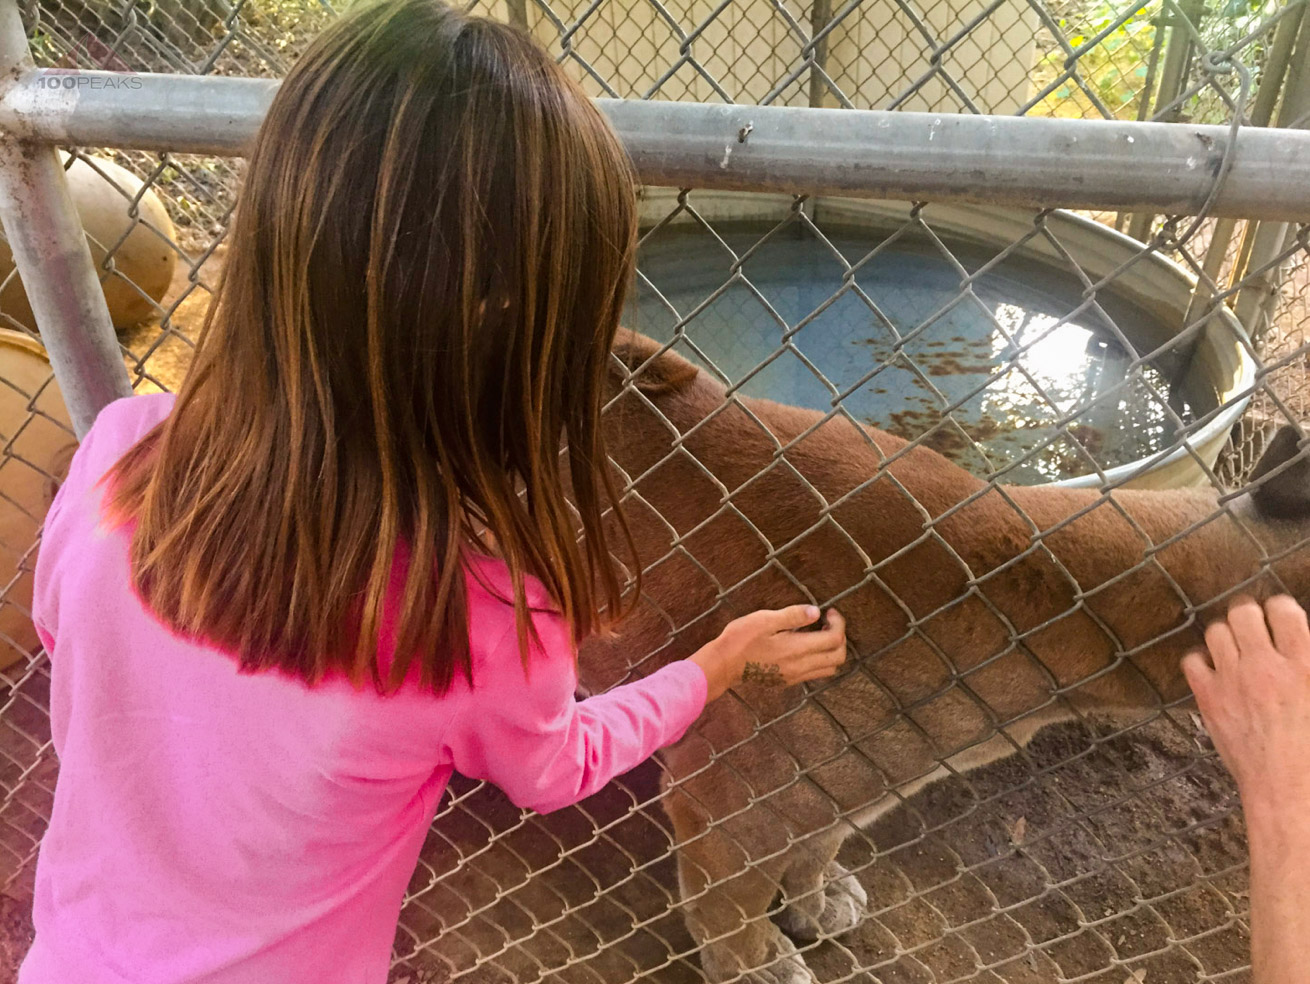 Sophia, when she was 6, petting a mountain lion at Mostly Monkeys